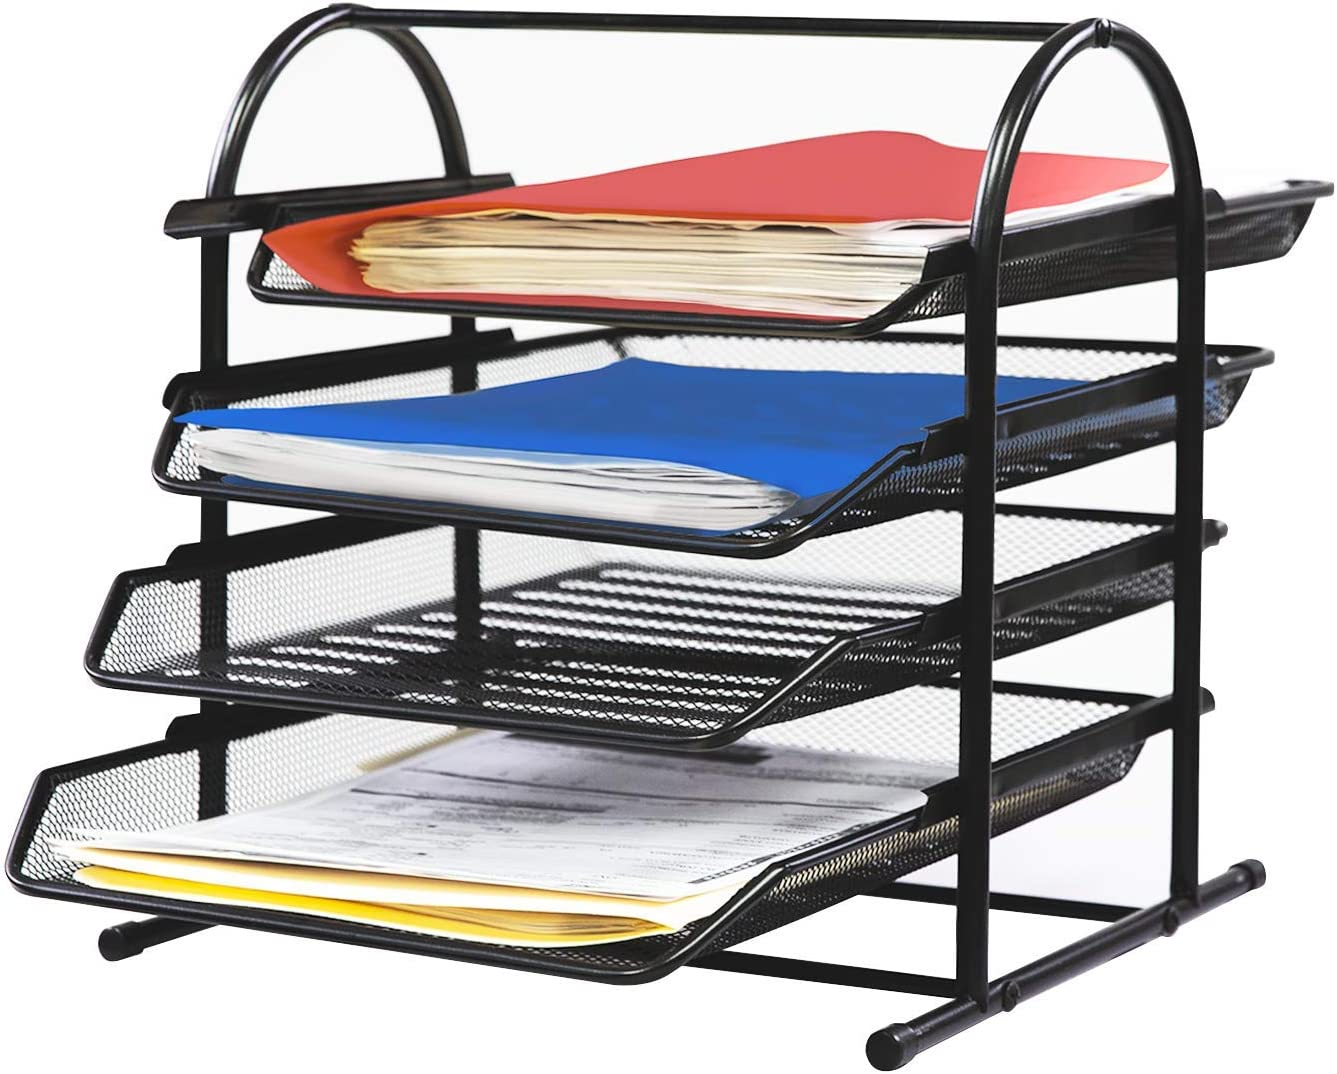 Jerry & Maggie - Steel Desk Organizer Office File Folder Rack File Folder Holders Bookcase Desktop Bookshelf - Multi Function Sturdy Simple Organizer Tray Shelf Steel Net Surface | Black